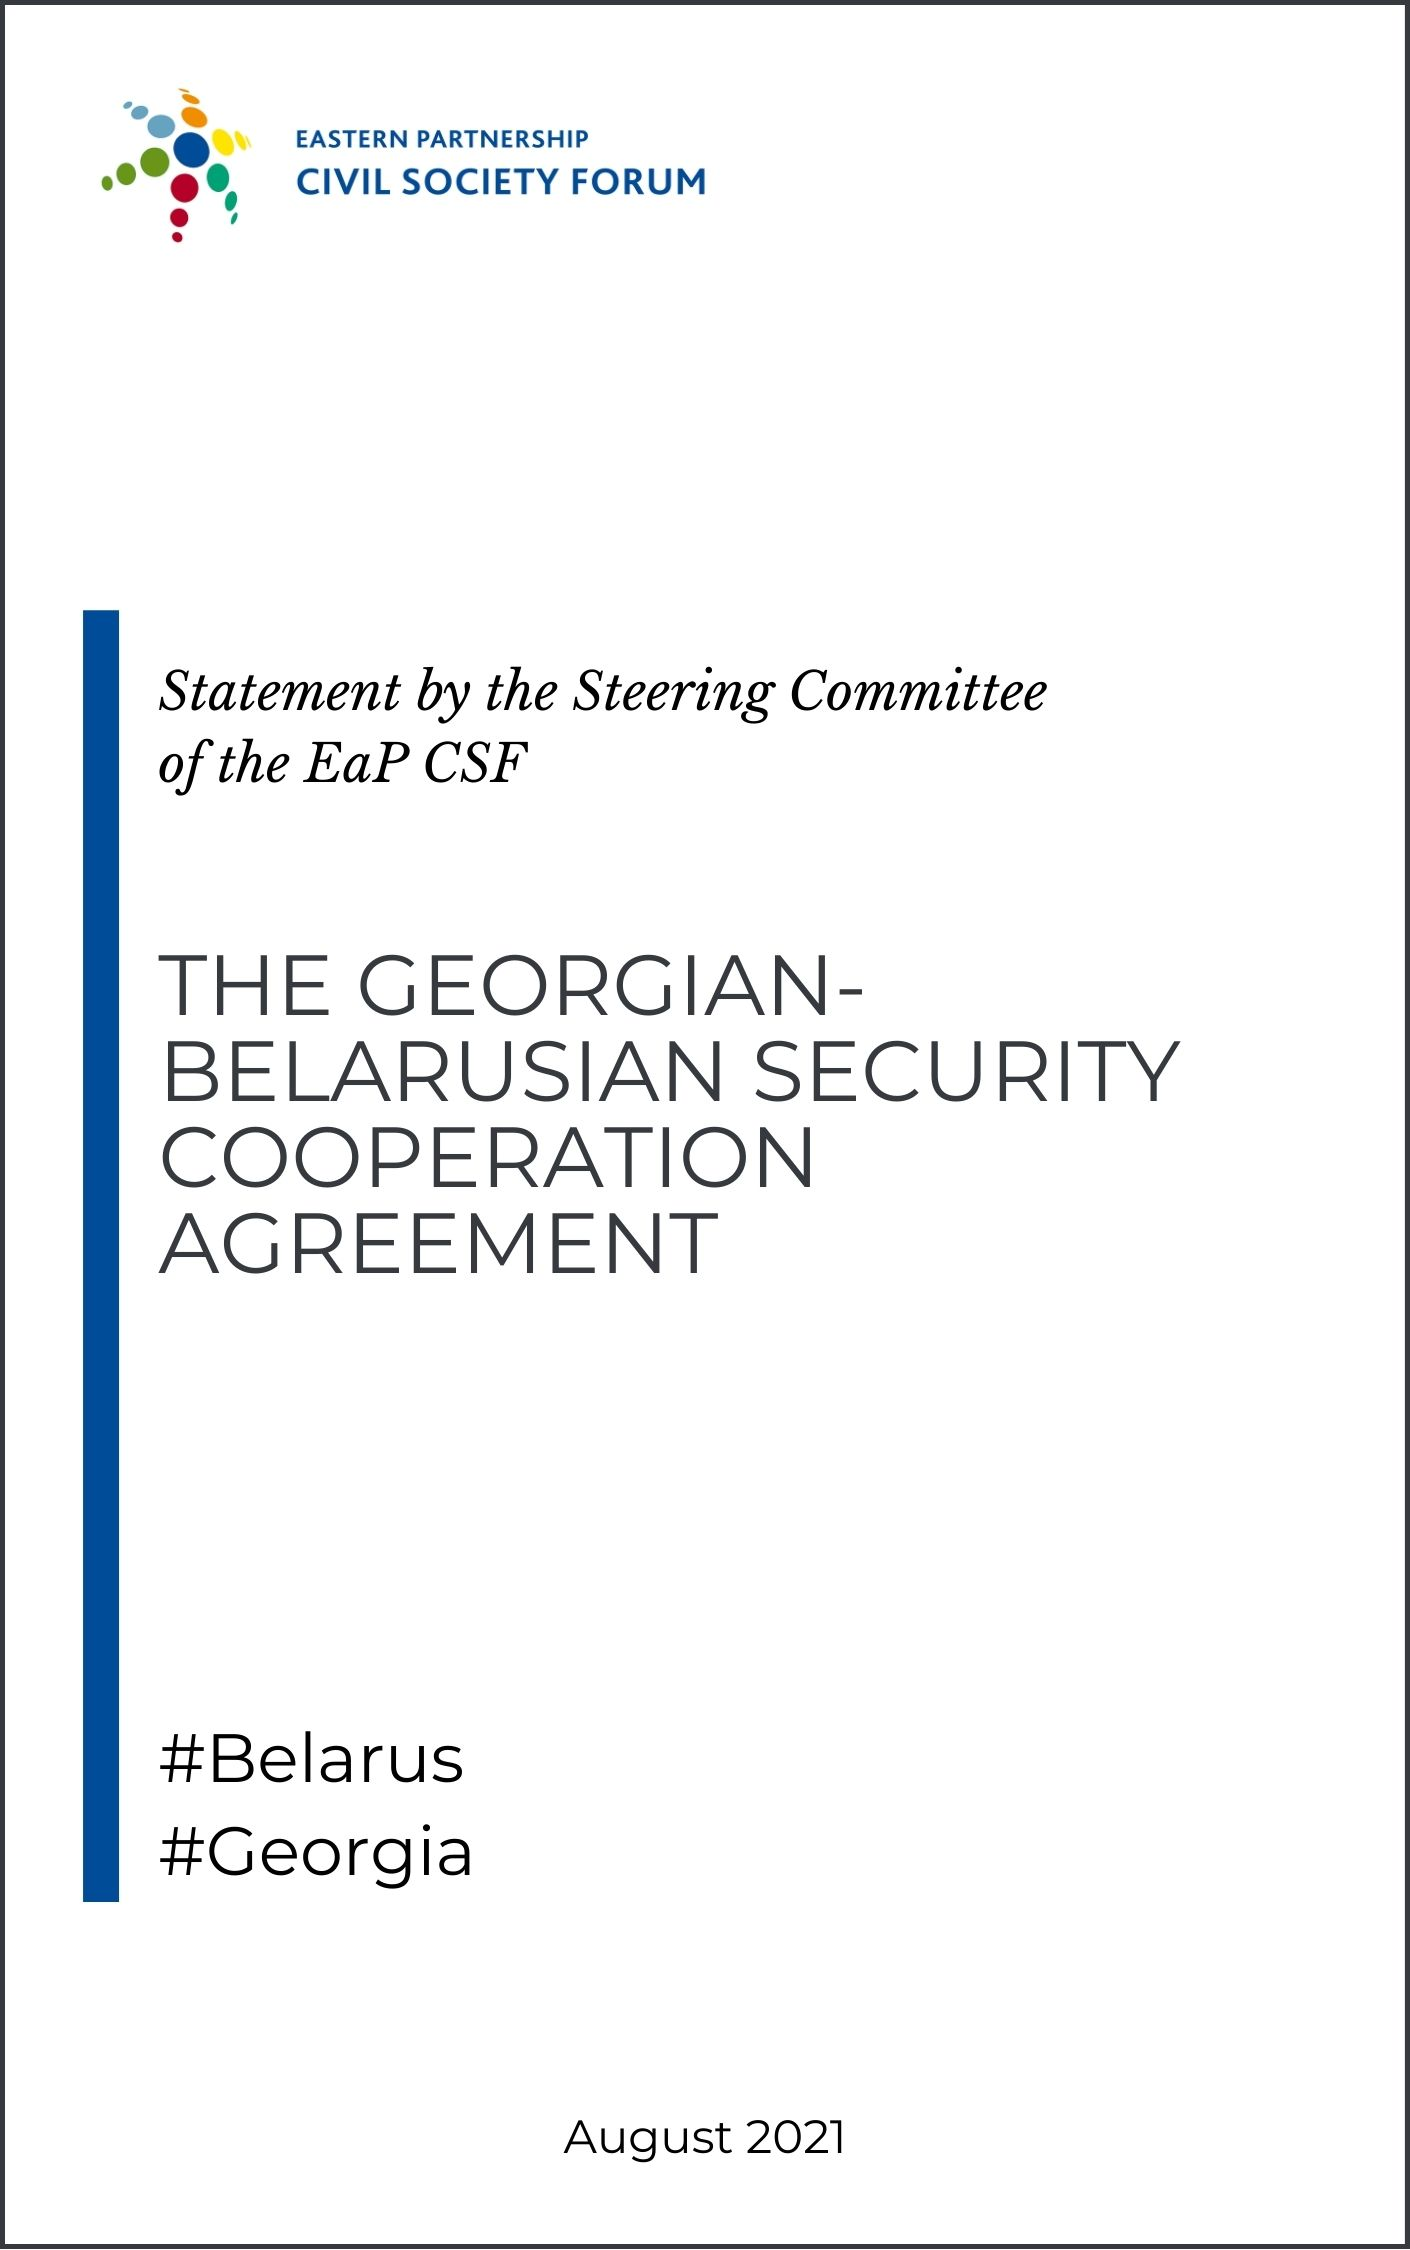 Steering Committee statement on the Georgian-Belarusian security cooperation agreement